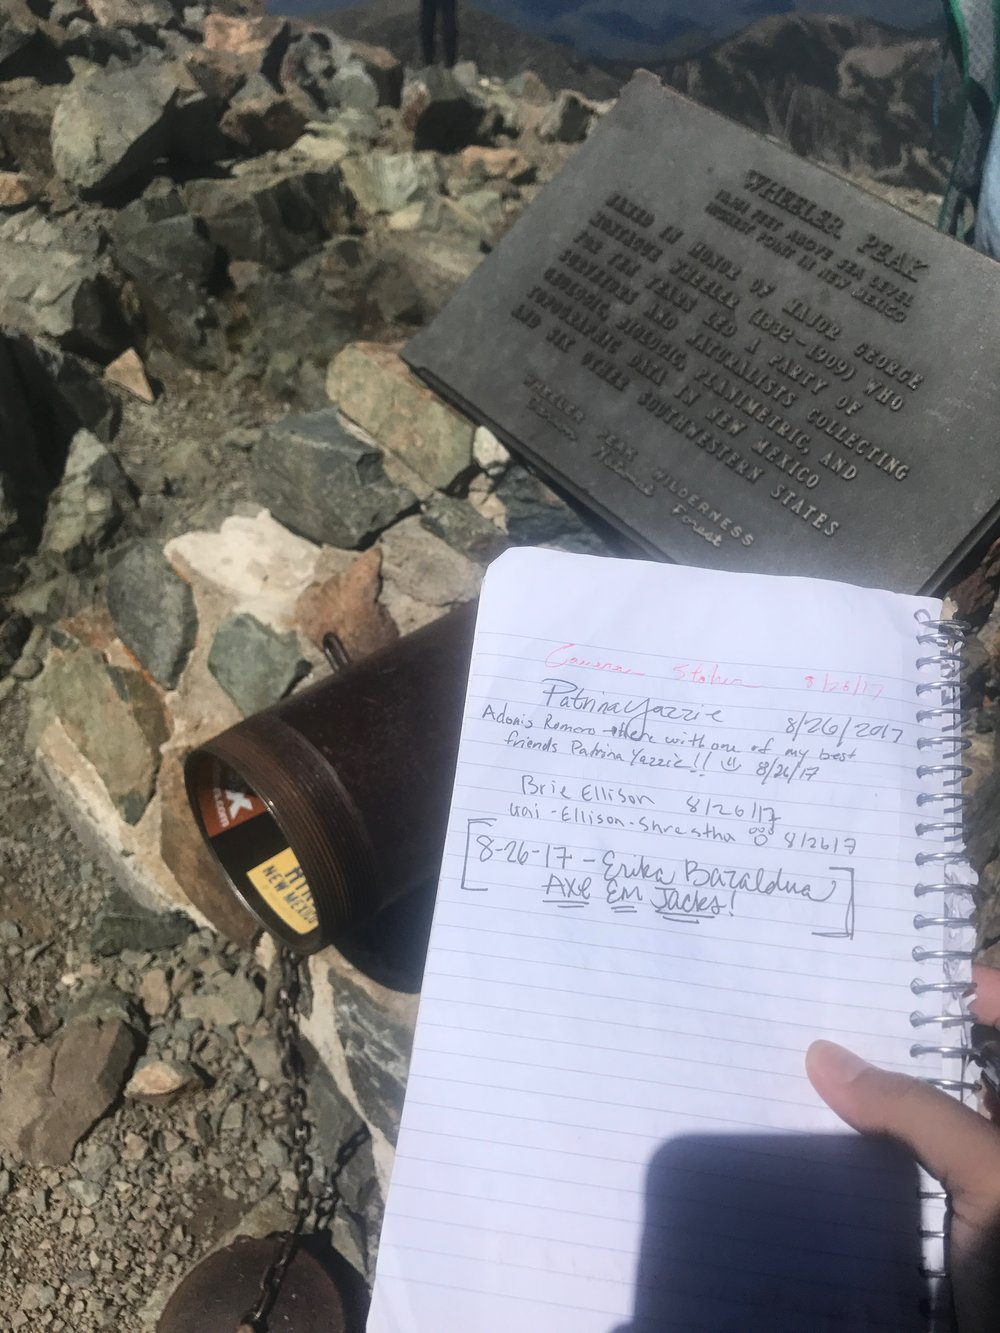 To those who've have come before you... and those who will follow. - My signature joined hundreds of other names who are saved in a canon at the top of the Mountain. A beautiful tribute.